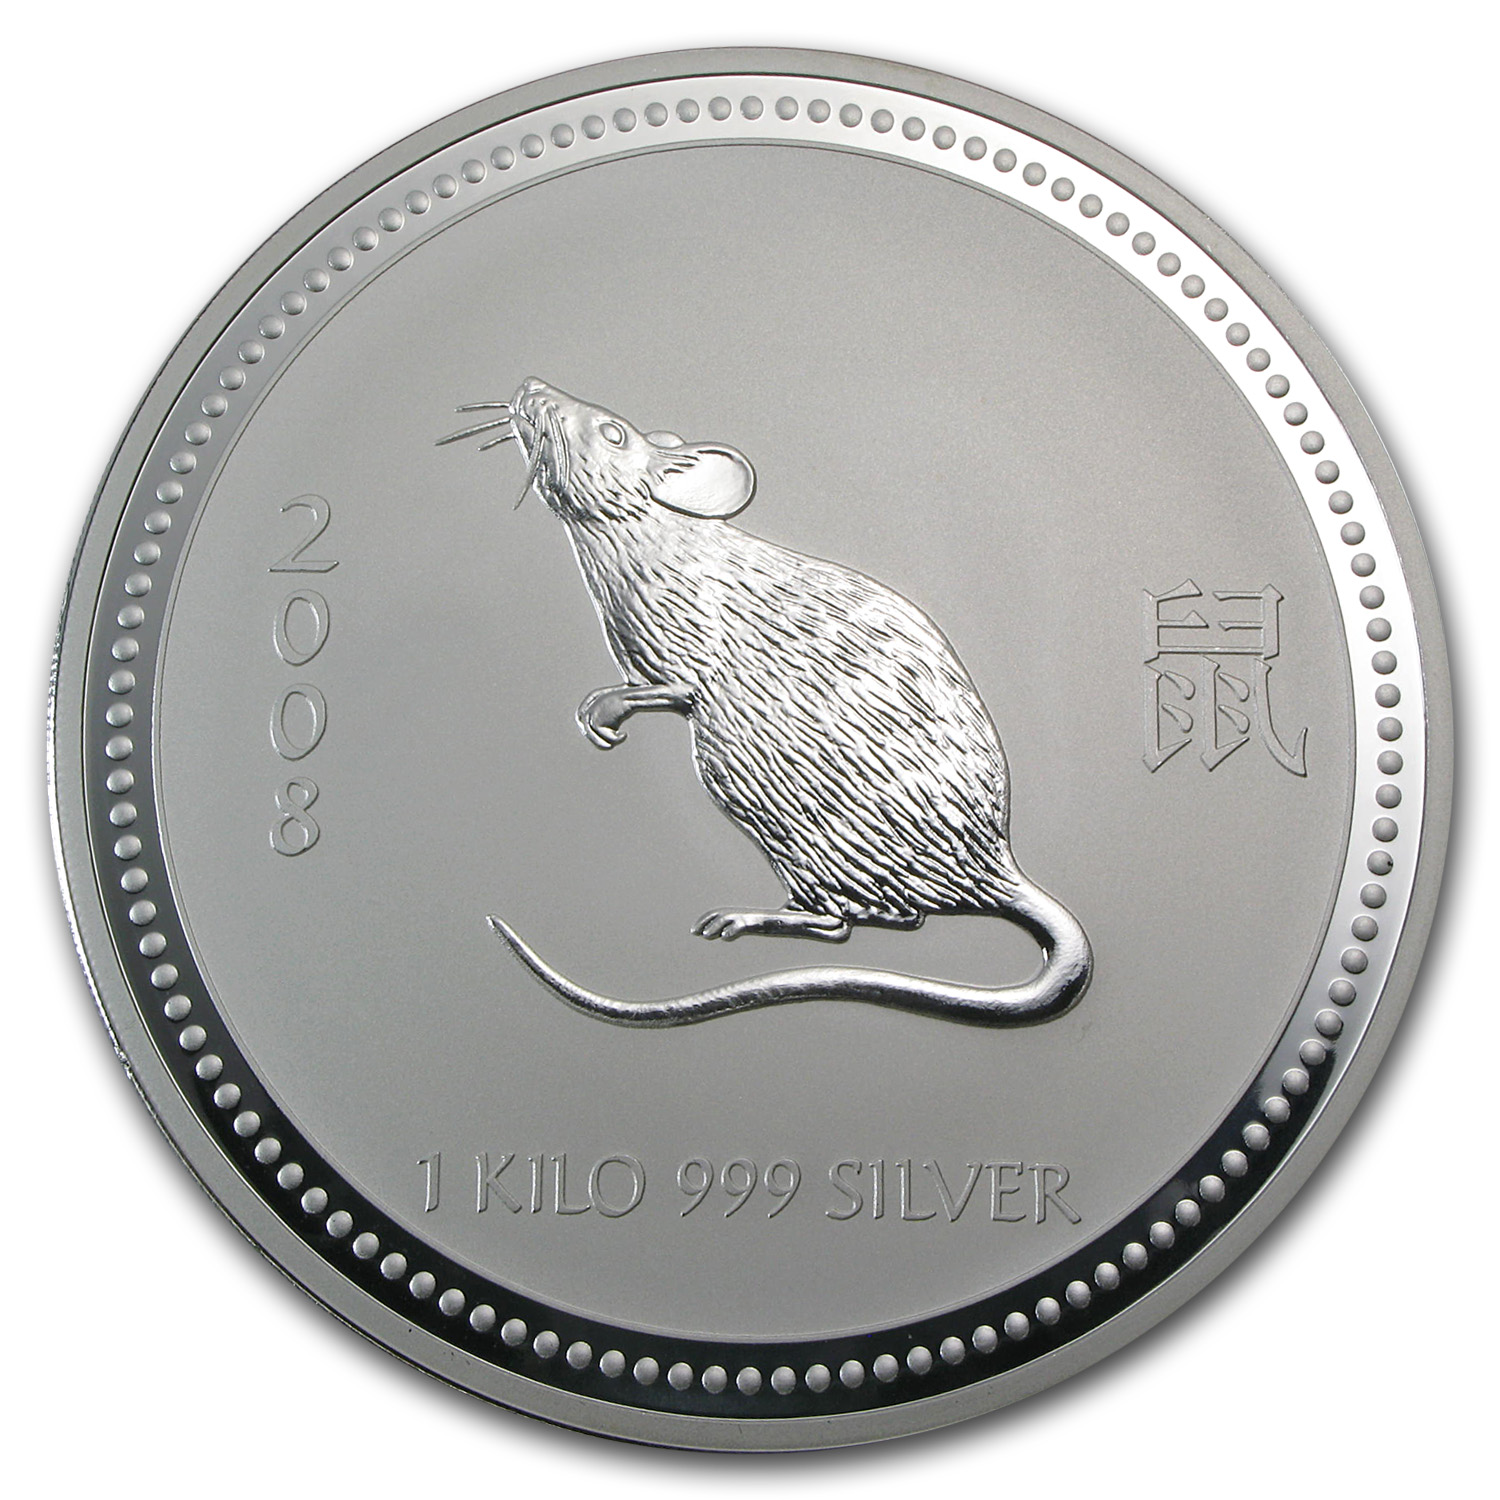 2008 1 kilo Silver Lunar Year of the Mouse SI (Light Abrasions)